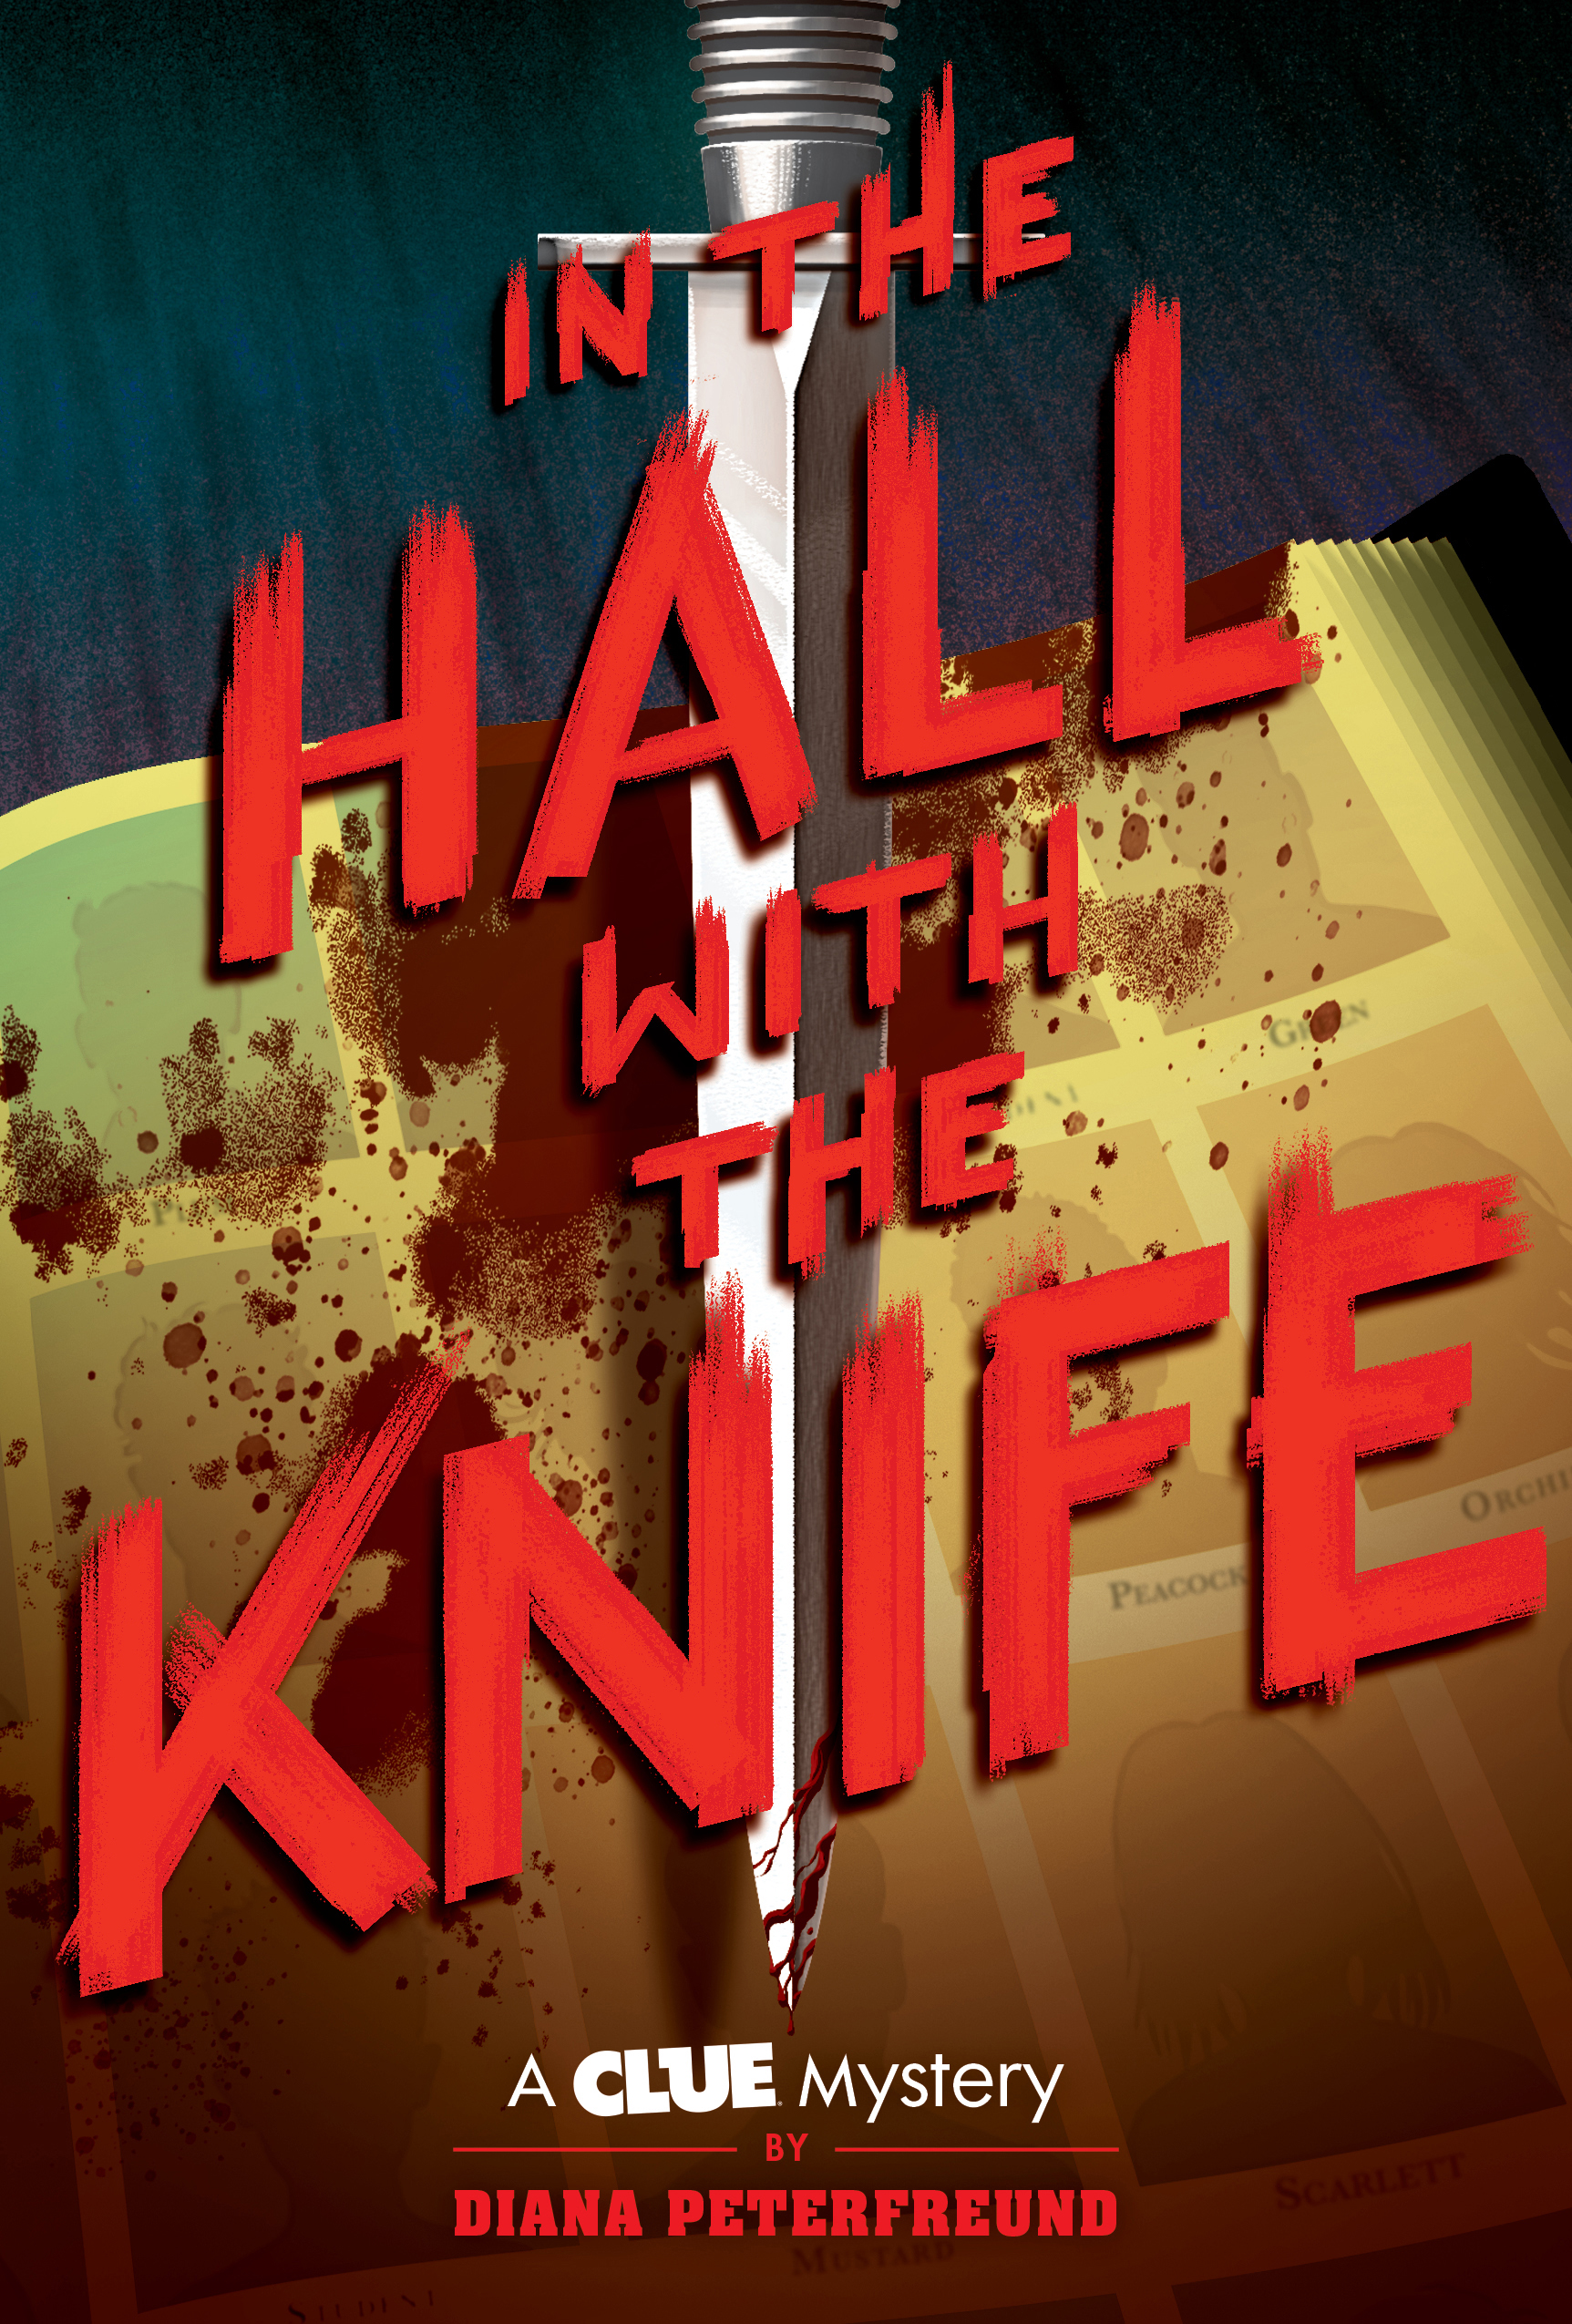 """In the Hall with the KnifeDiana Peterfreund - When a storm strikes at Blackbrook Academy, an elite prep school nestled in the woods of Maine, a motley crew of students—including Beth """"Peacock"""" Picach, Orchid McKee, Vaughn Green, Sam """"Mustard"""" Maestor, Finn Plum, and Scarlet Mistry—are left stranded on campus with their headmaster.Read more here »"""